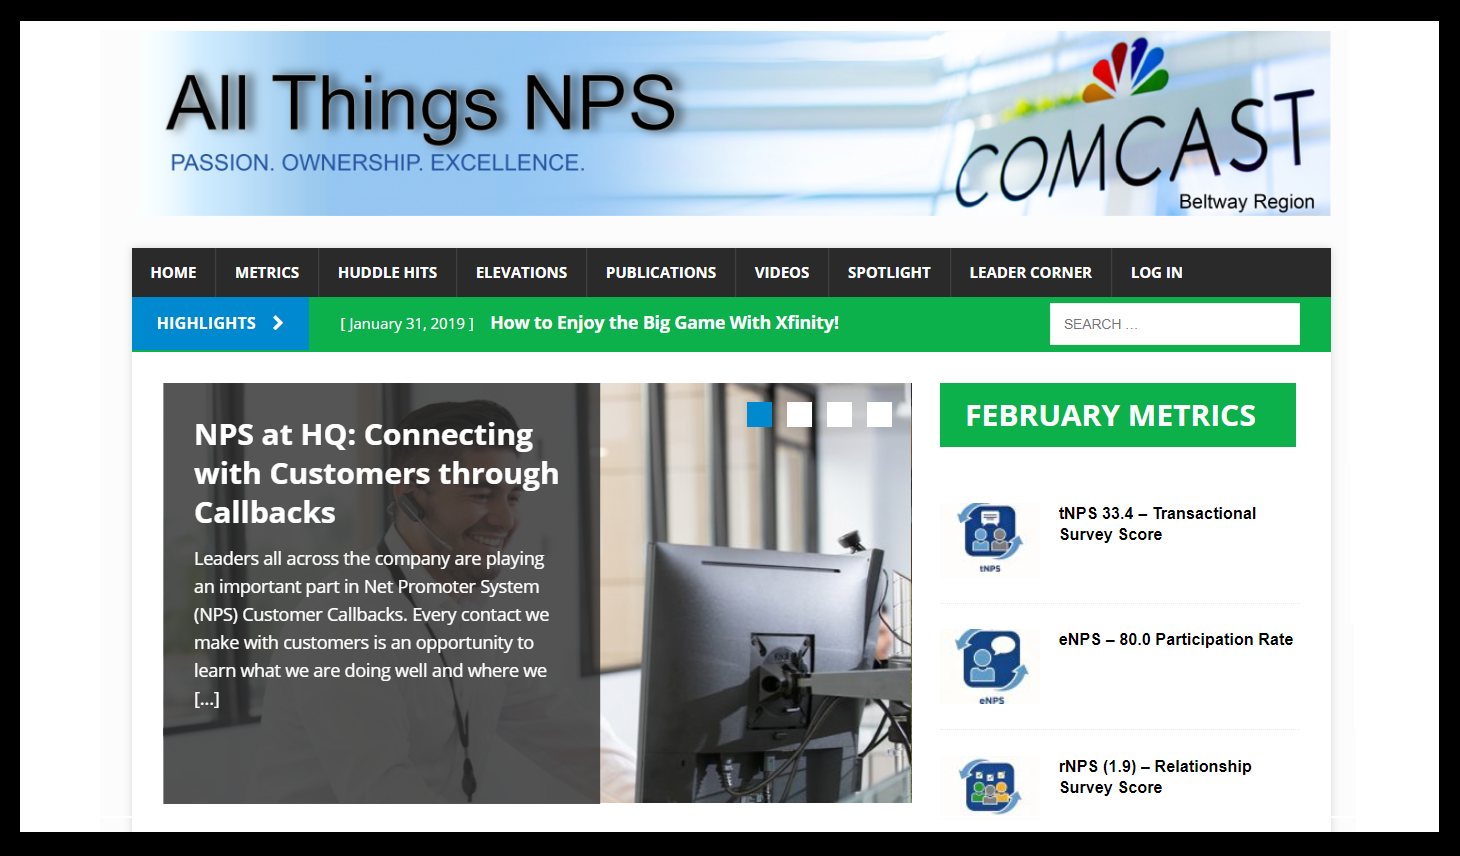 Comcast All Things NPS - All Things NPS is an internal centralized website for employees. In 2018 Comcast reached out to Marvin Louis Moore to create a one stop shop website portal for employees to find: NPS news, resources…